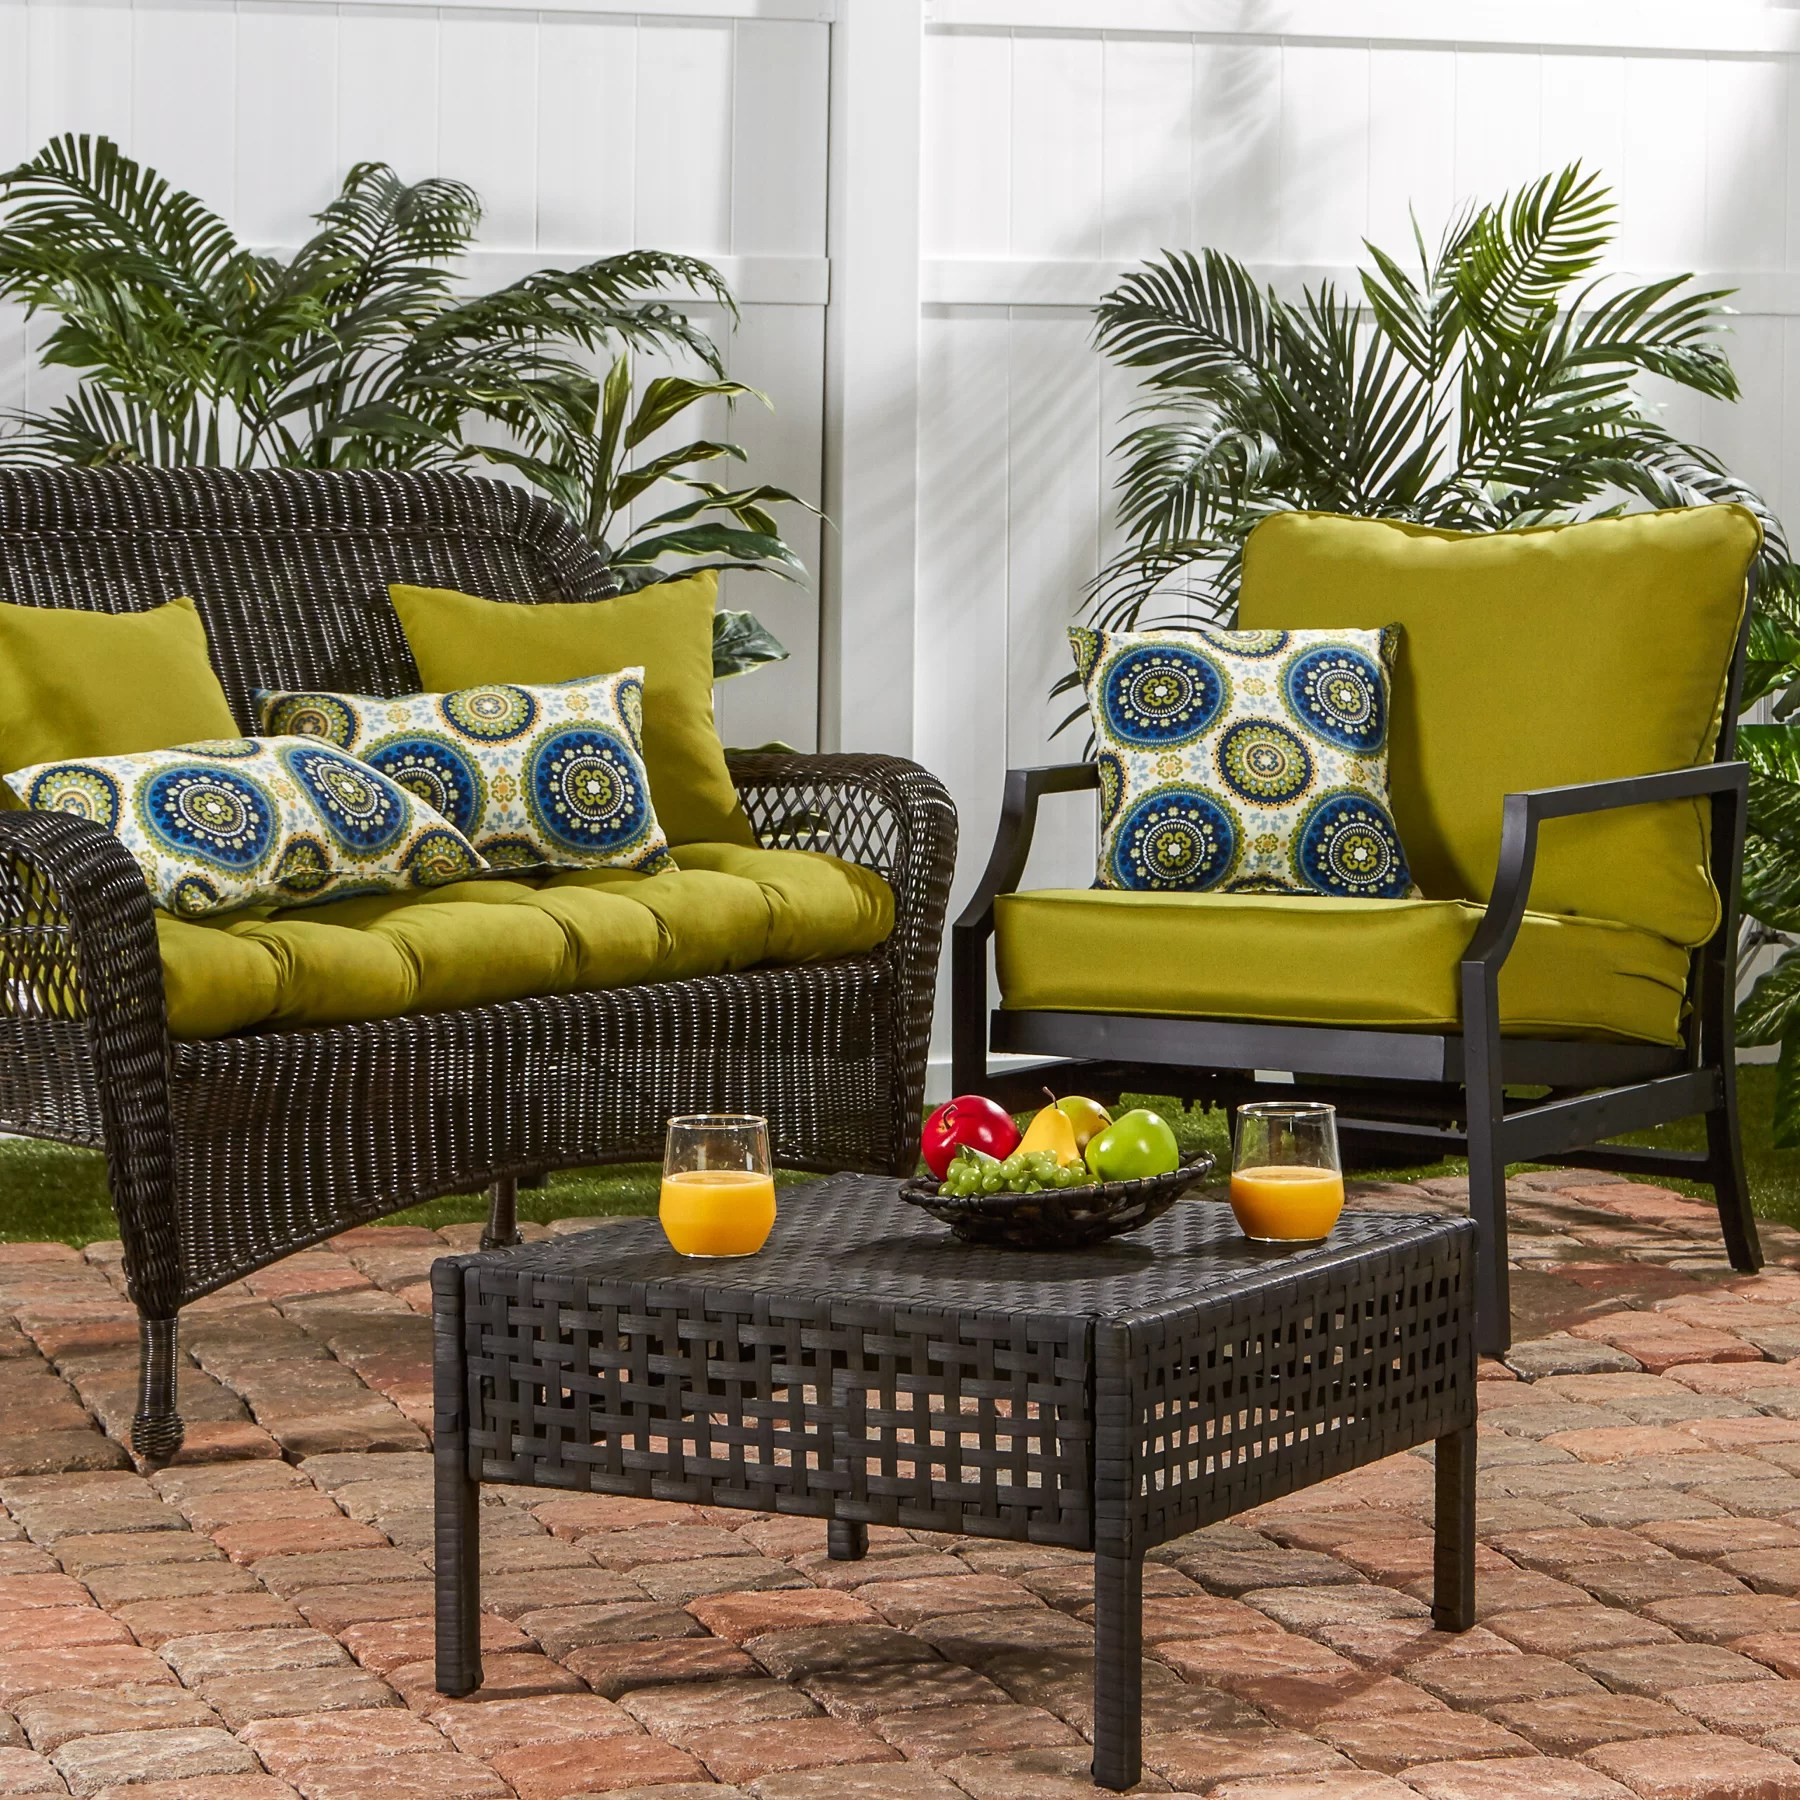 Outdoor Lounge Chair Cushions Greendale Home Fashions Outdoor Lounge Chair Cushion